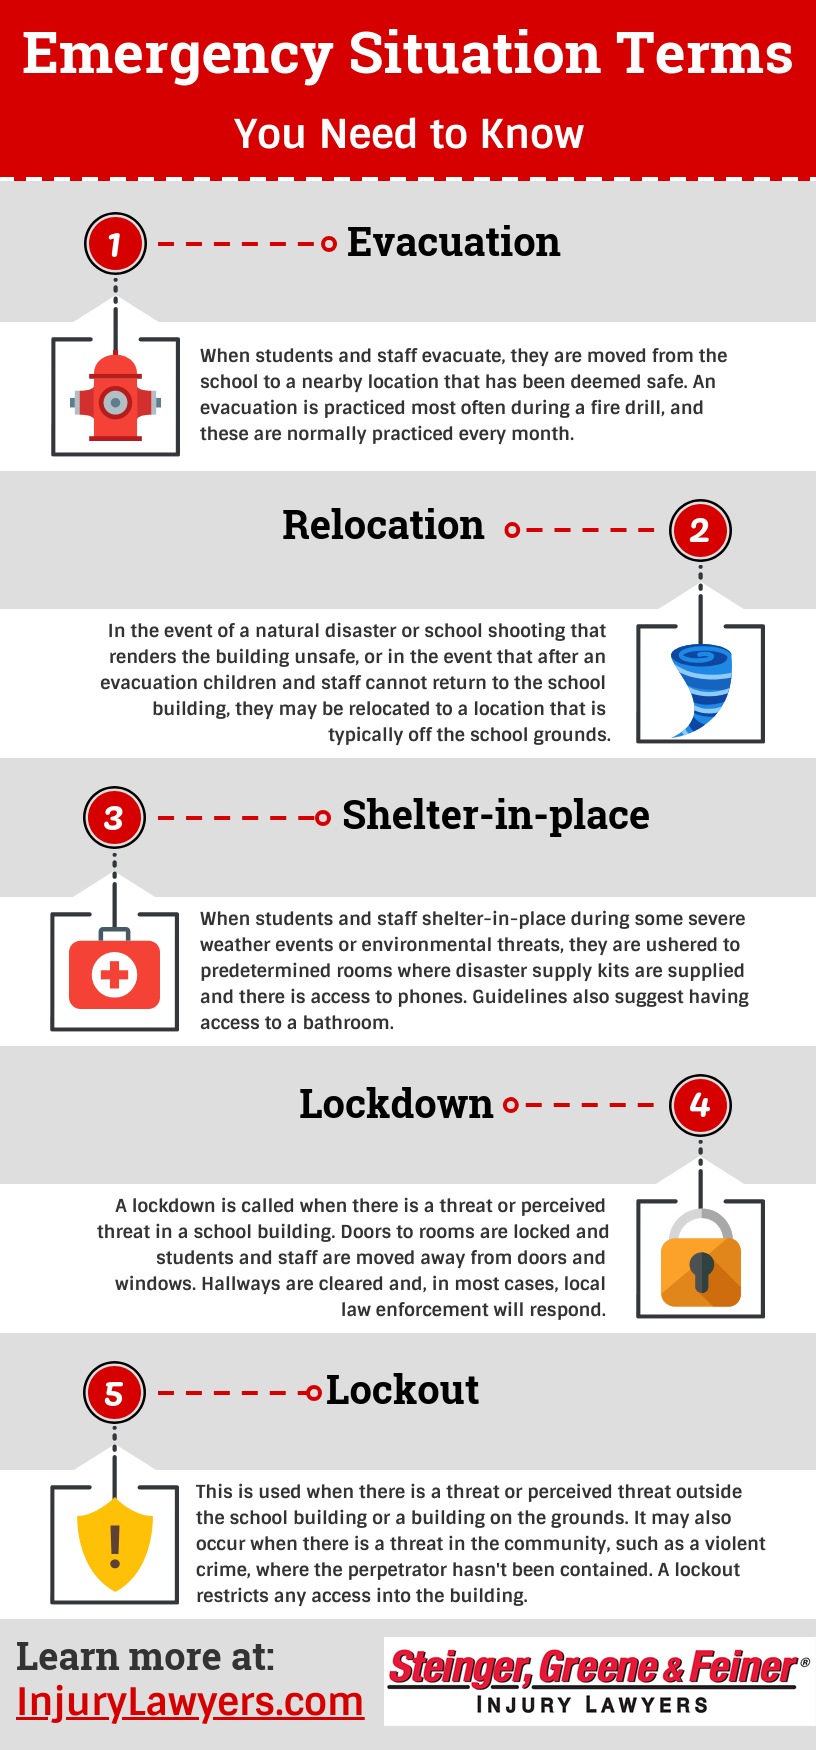 Emergency Situation Terms You Need to Know infographic